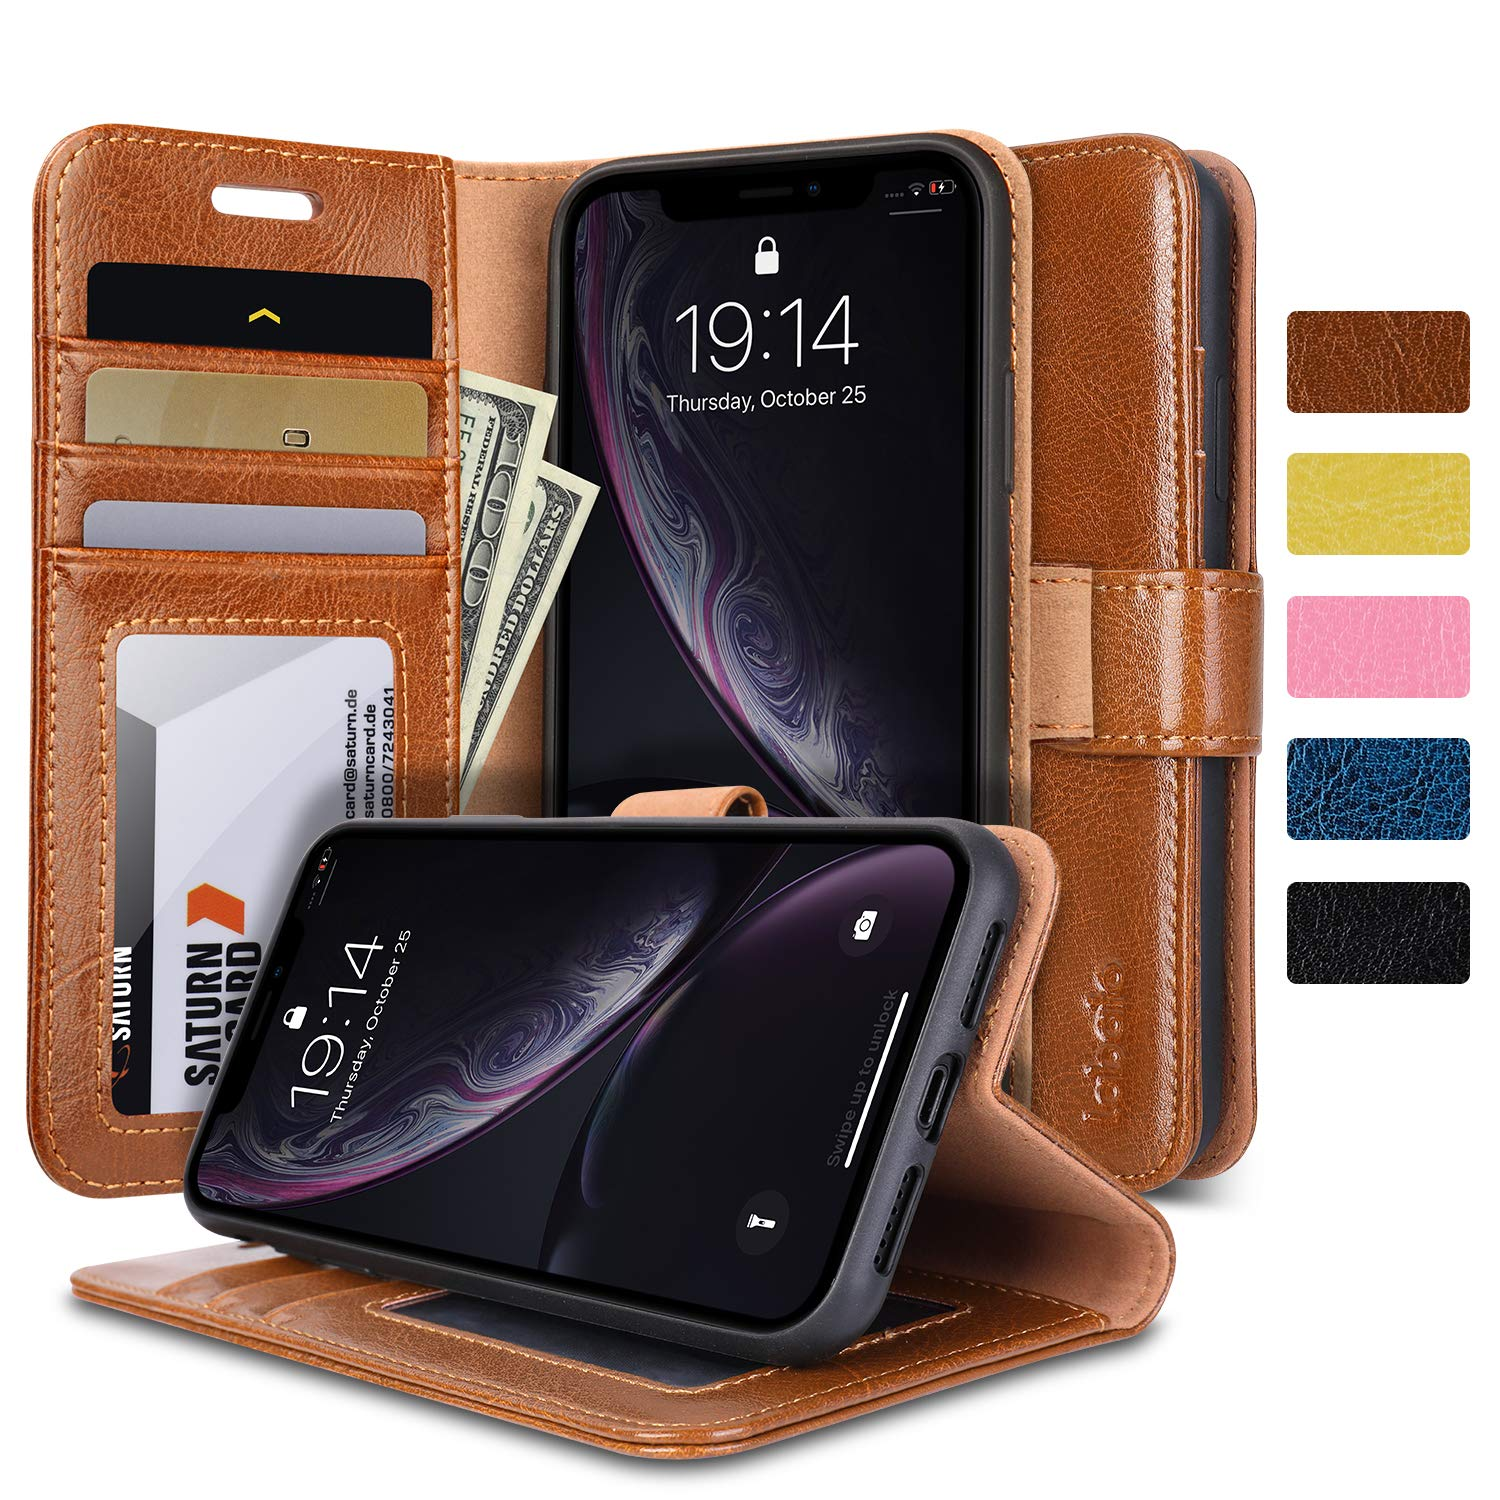 iPhone XR Case, iPhone XR Wallet Case, Labato Genuine Leather Magnetic Flip Case Cover Stand Function with Card Holder Support Wireless Charging/Wireless Car Charger Mount for Apple iPhone XR Brown